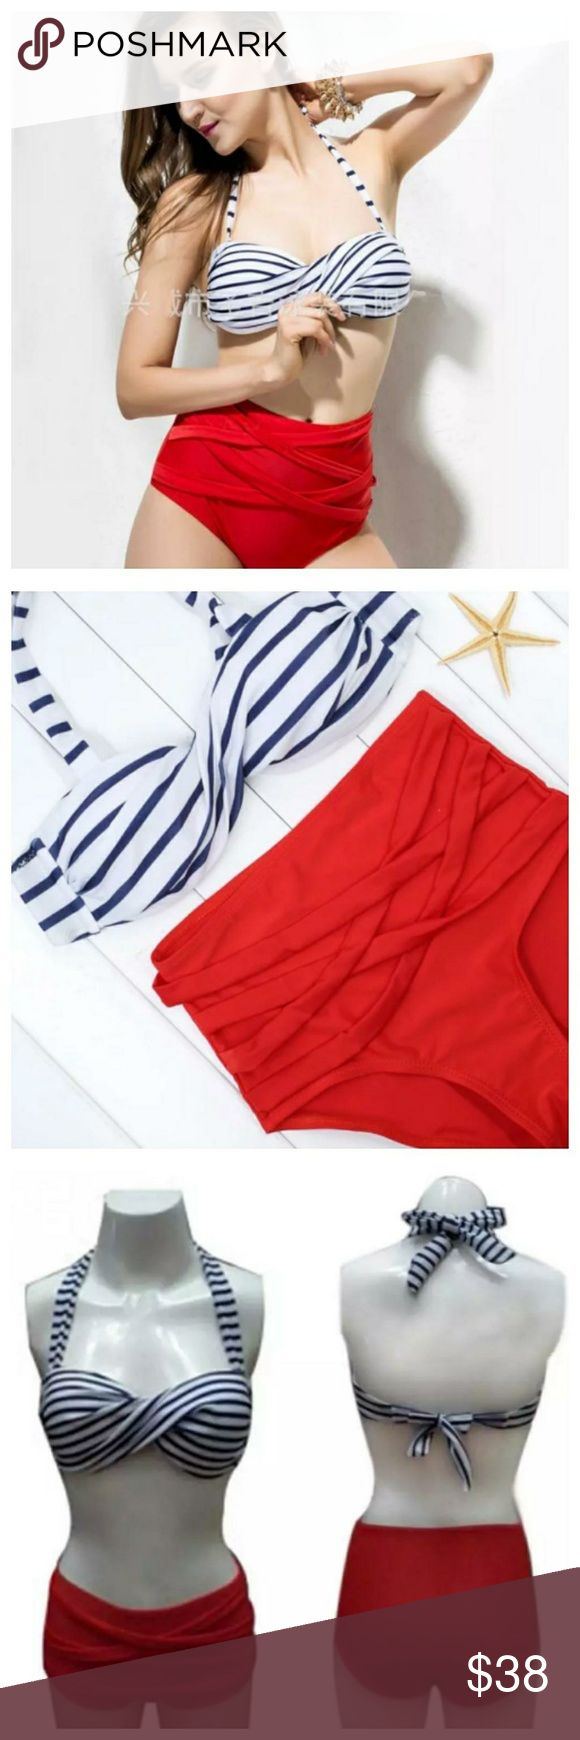 🆕️All American Vintage High Waist Bikini High waisted swimsuit cross strappy suit. Top is white and navy blue. Materials: Cotton, Polyester, Nylon, and Spandex. Swim Bikinis